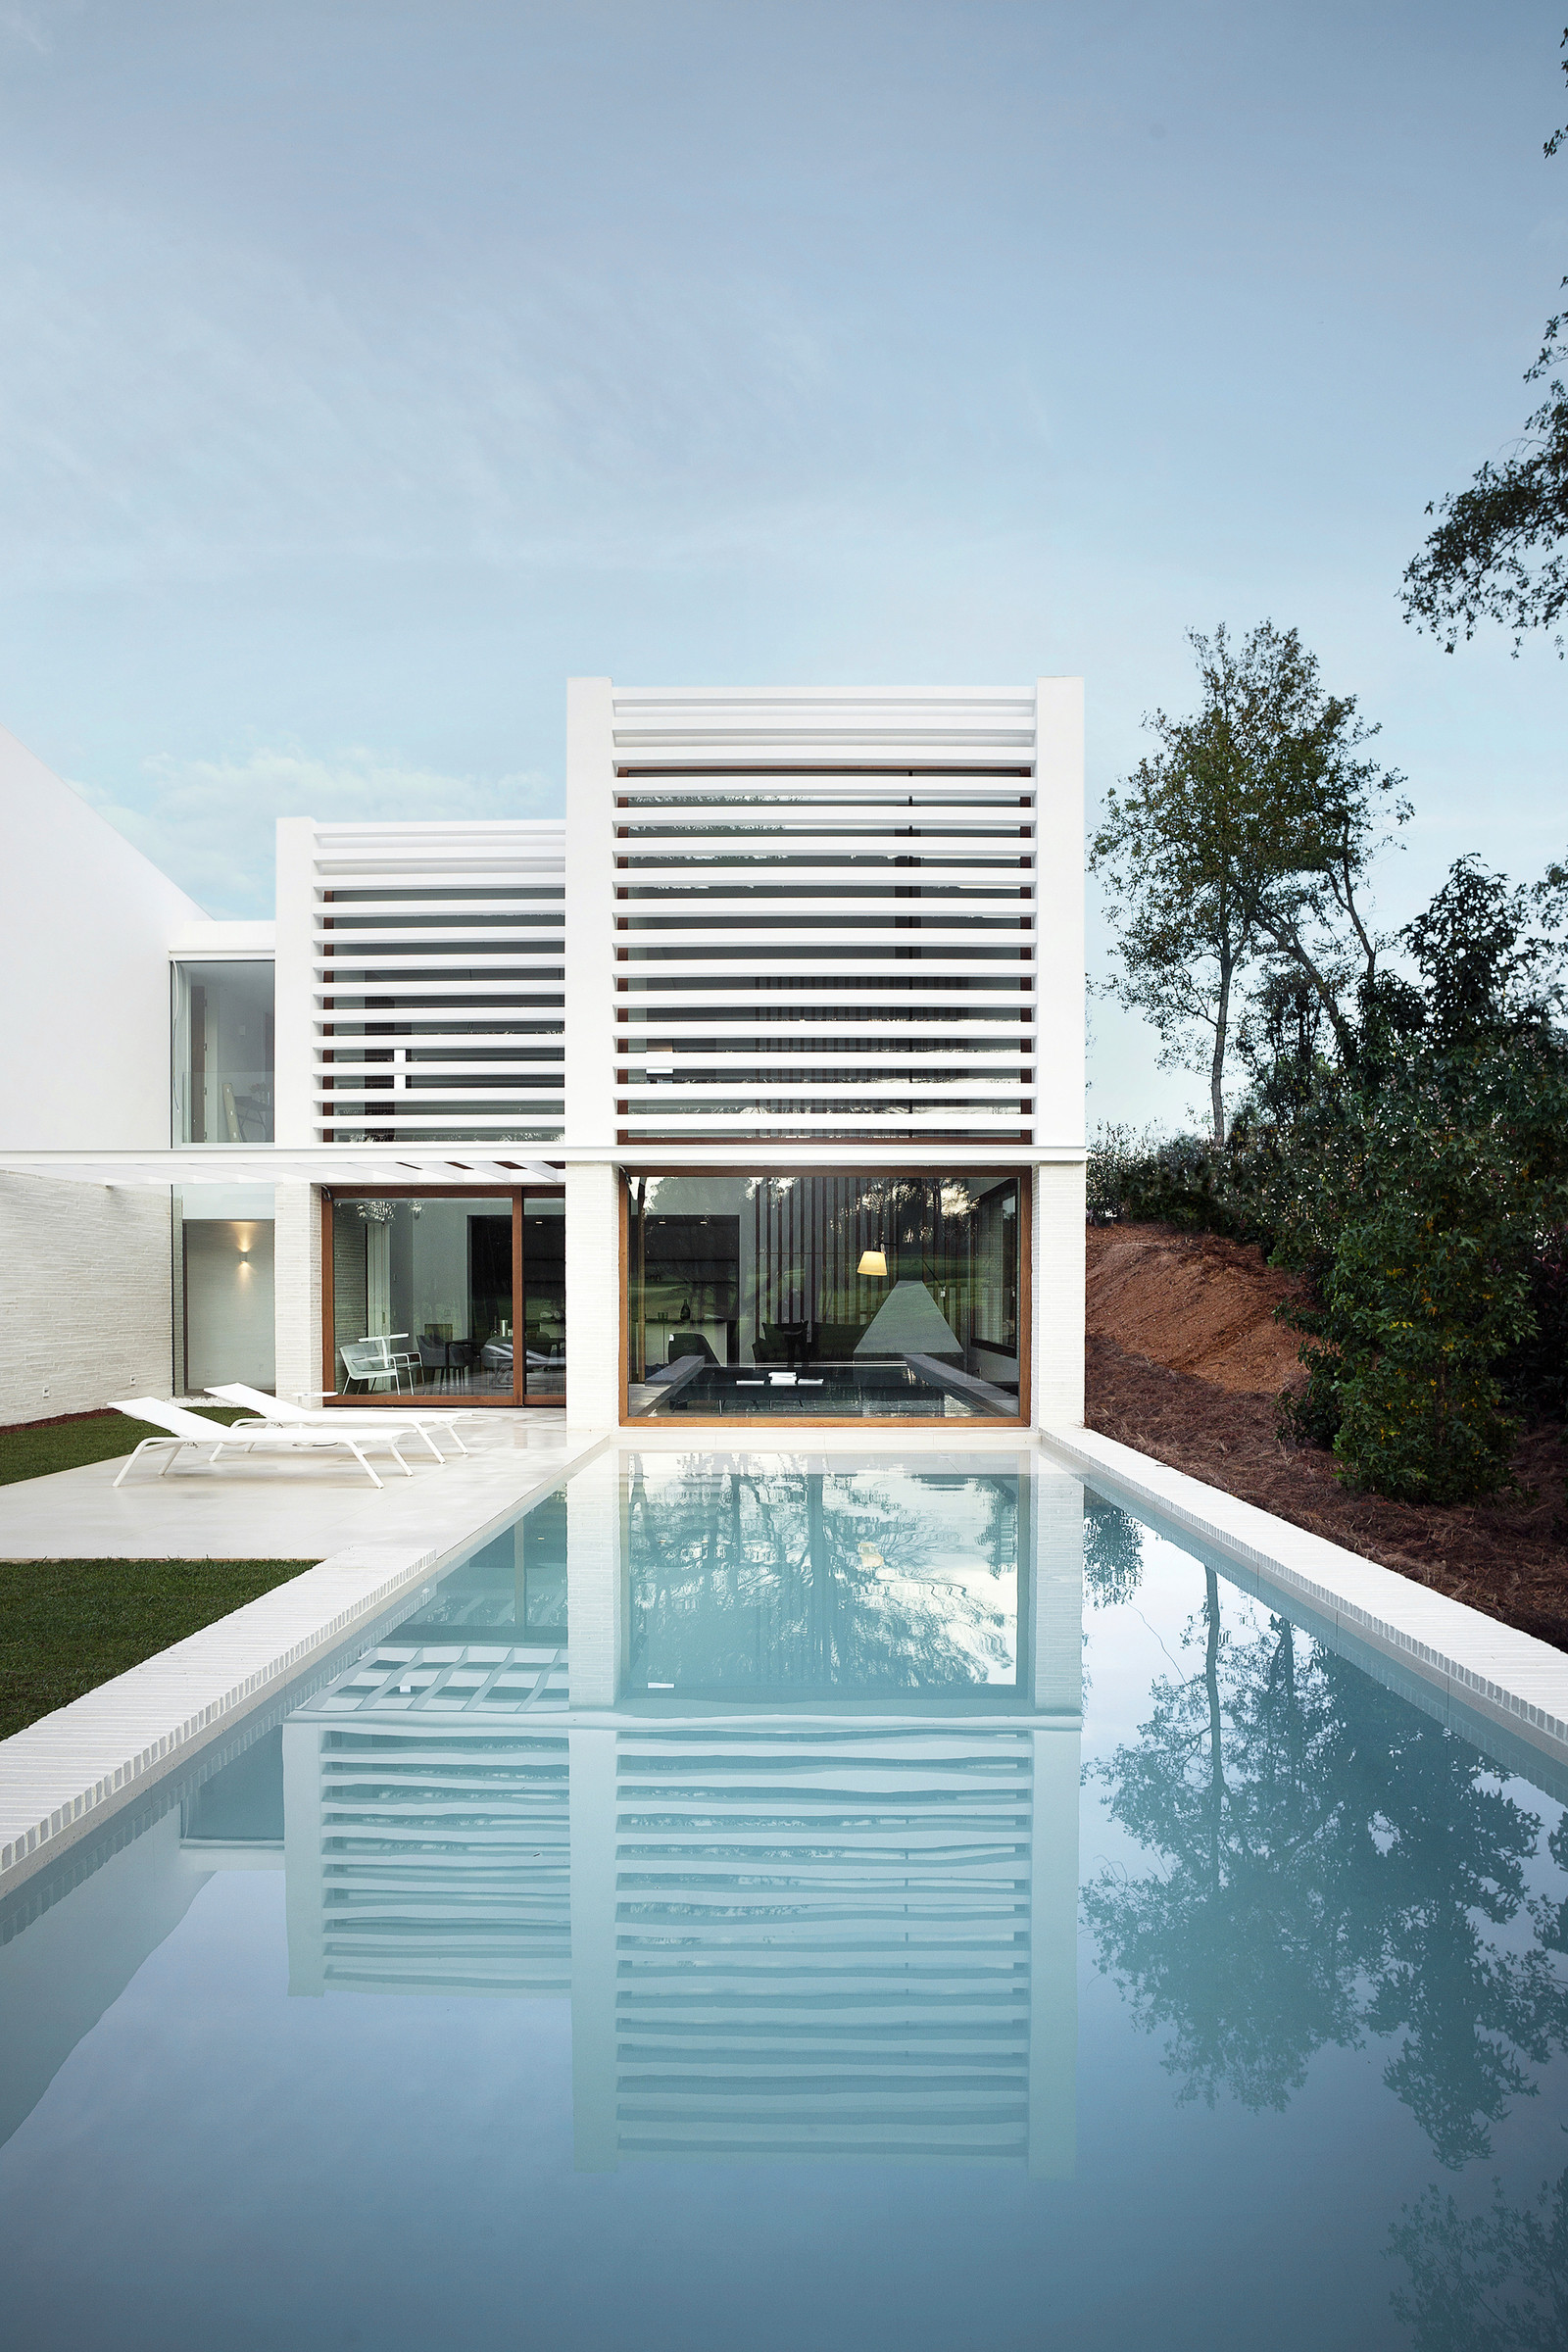 La Pineda by Jaime Prous Architects